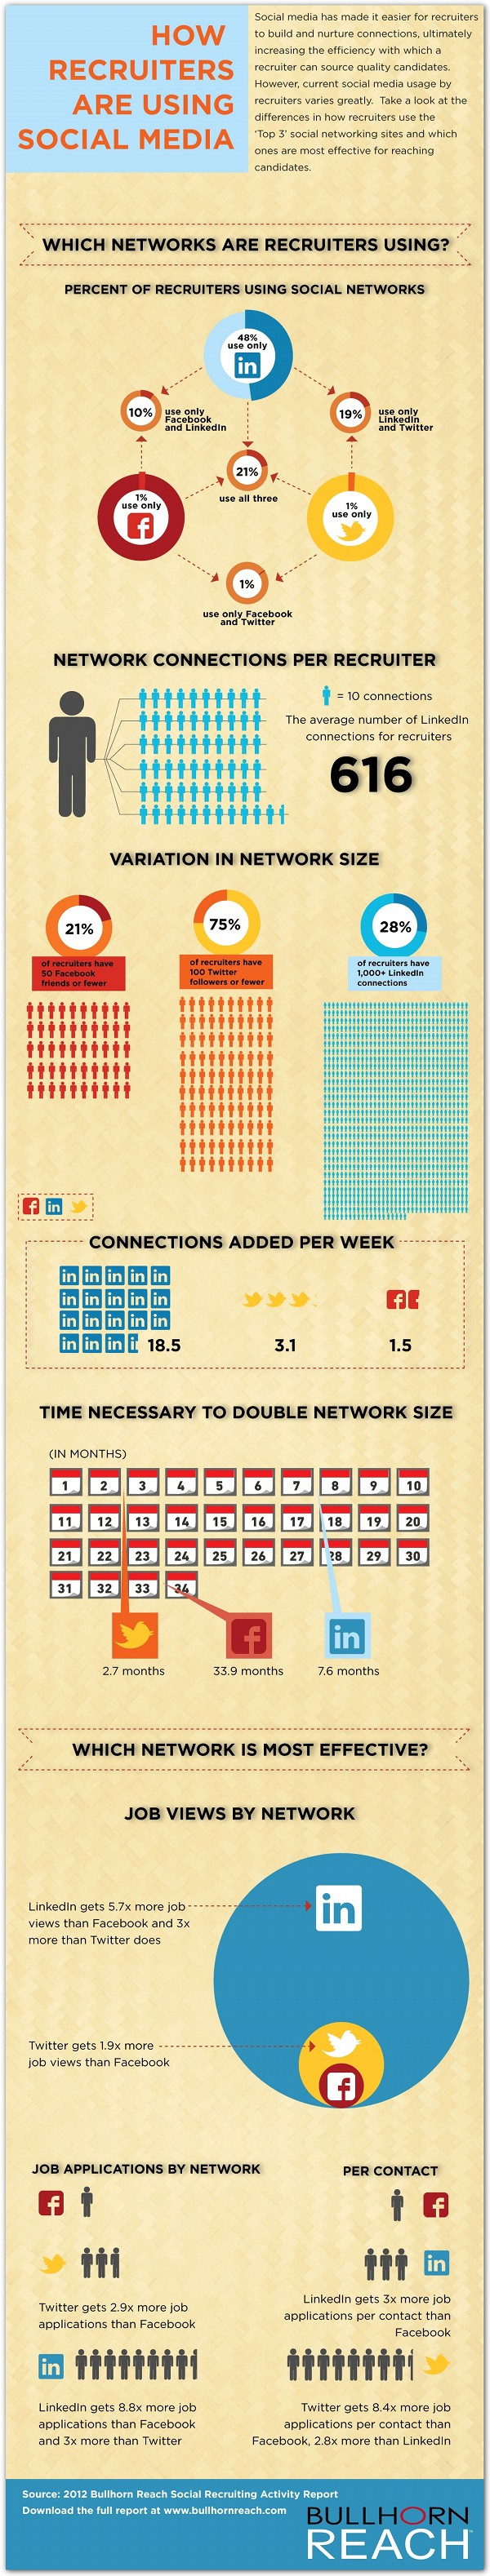 How to Get a Job with Social Networks